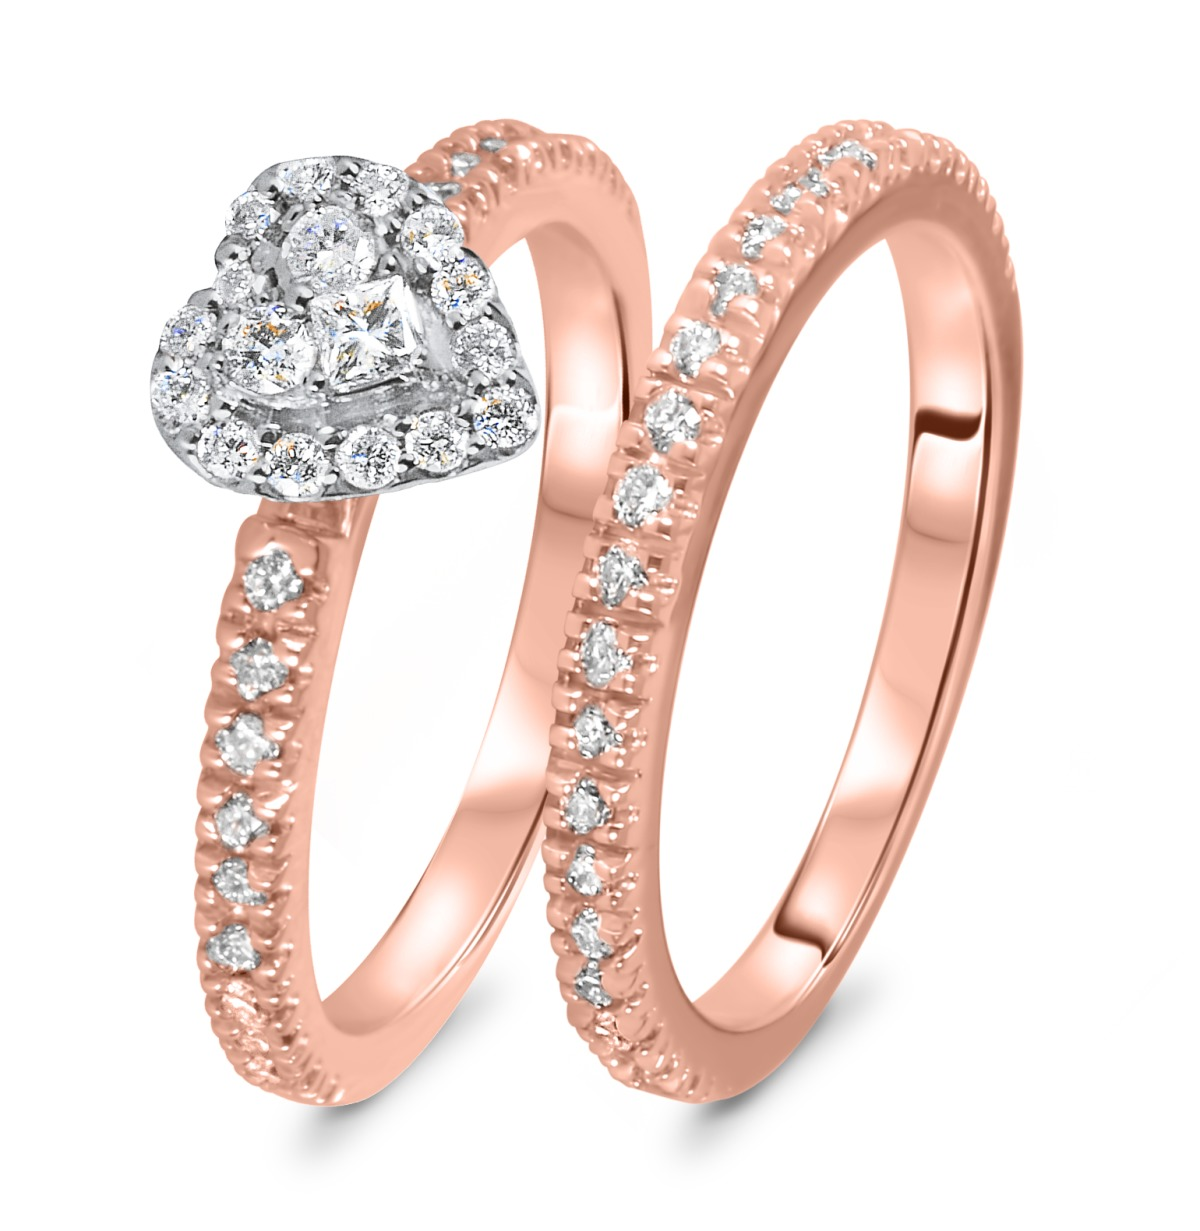 2/3 CT. T.W. Diamond Women's Bridal Wedding Ring Set 14K Rose Gold